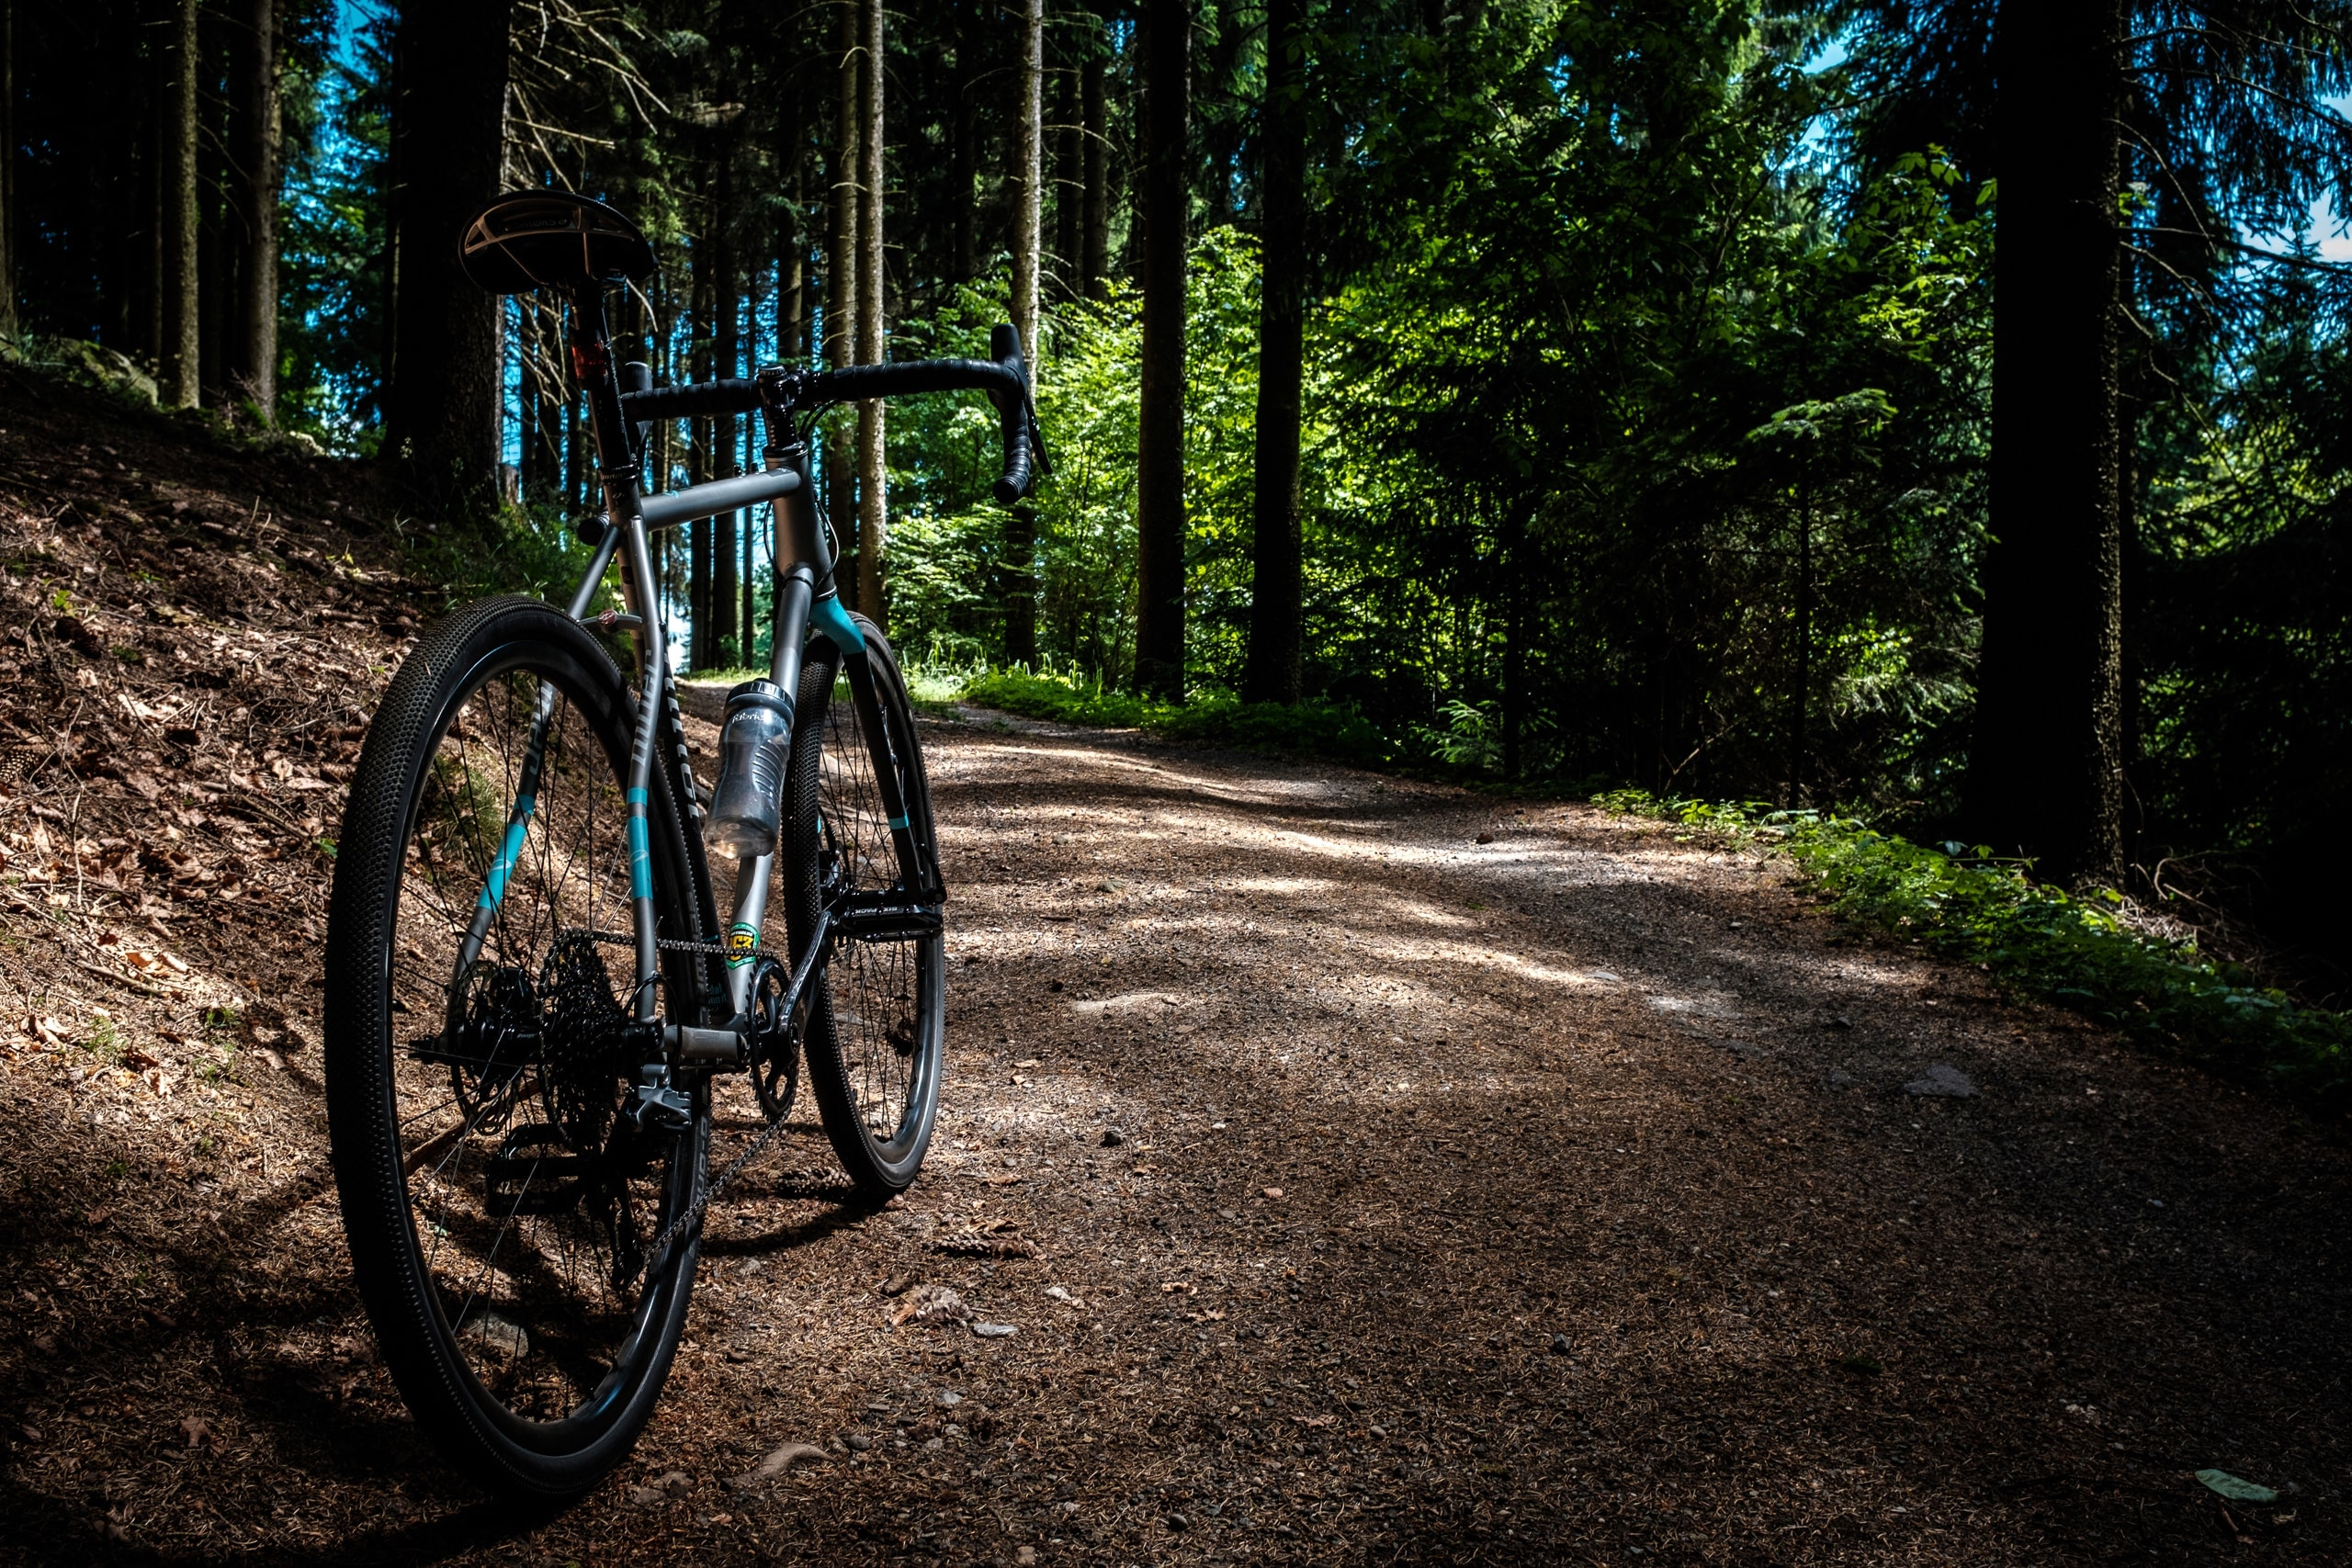 A mountain bike parked on a forest path